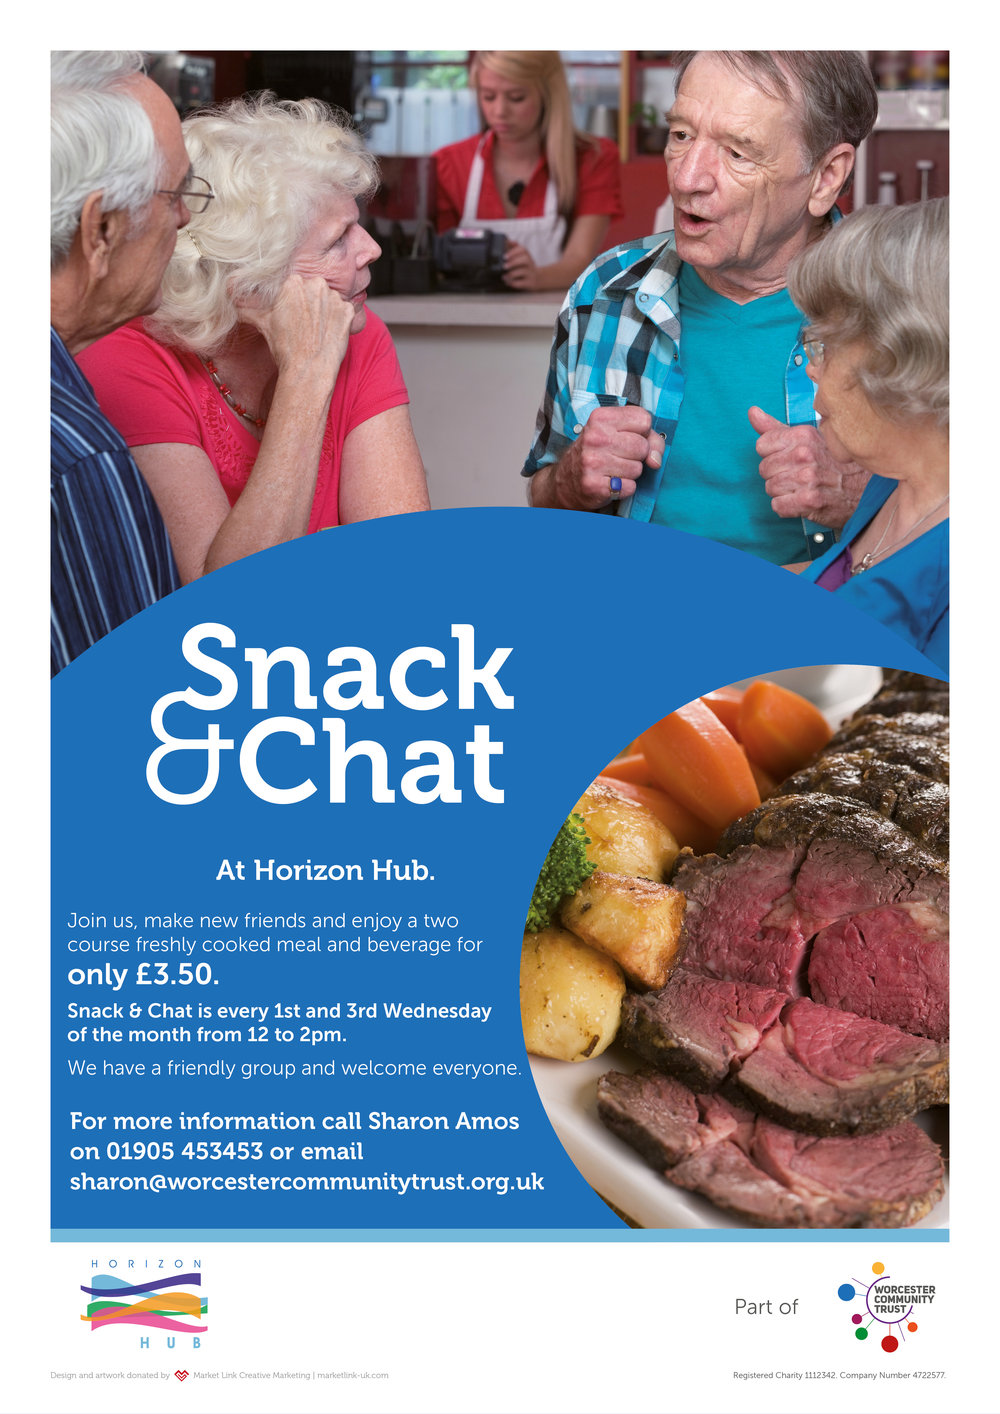 Snack & Chat posters3.jpg